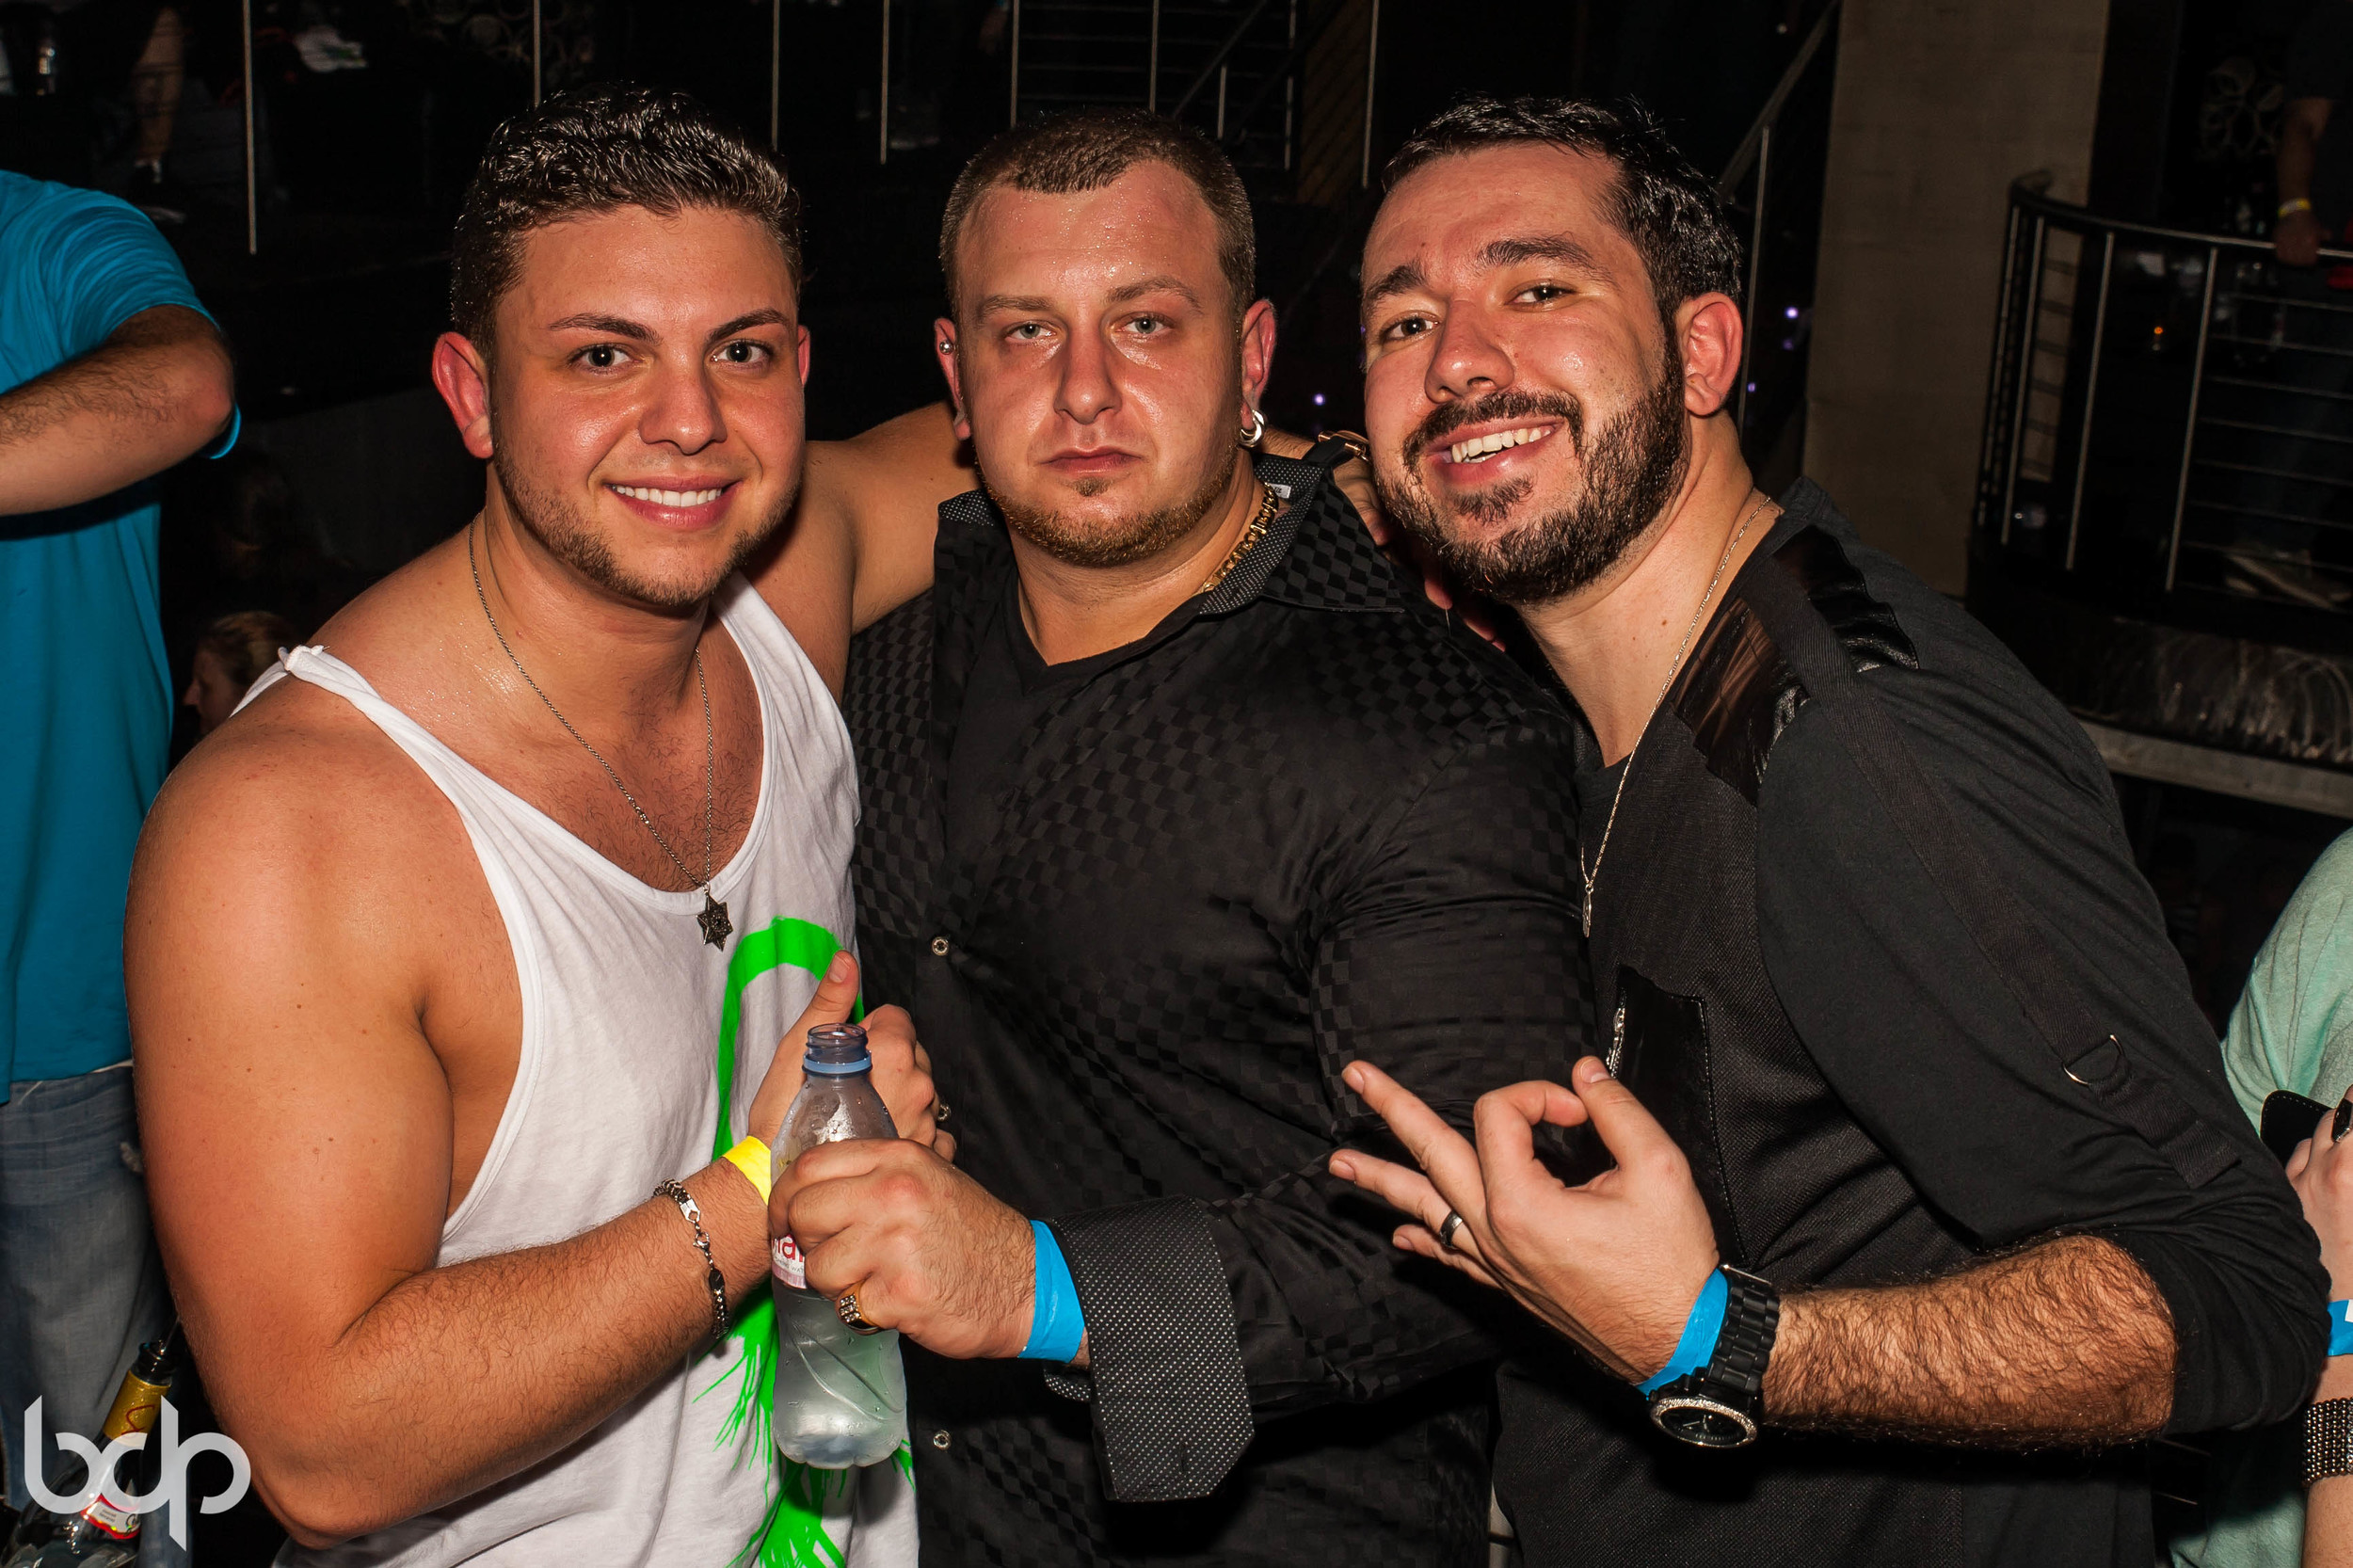 Aokify America Tour at Epic at Epic 110913 BDP-110.jpg